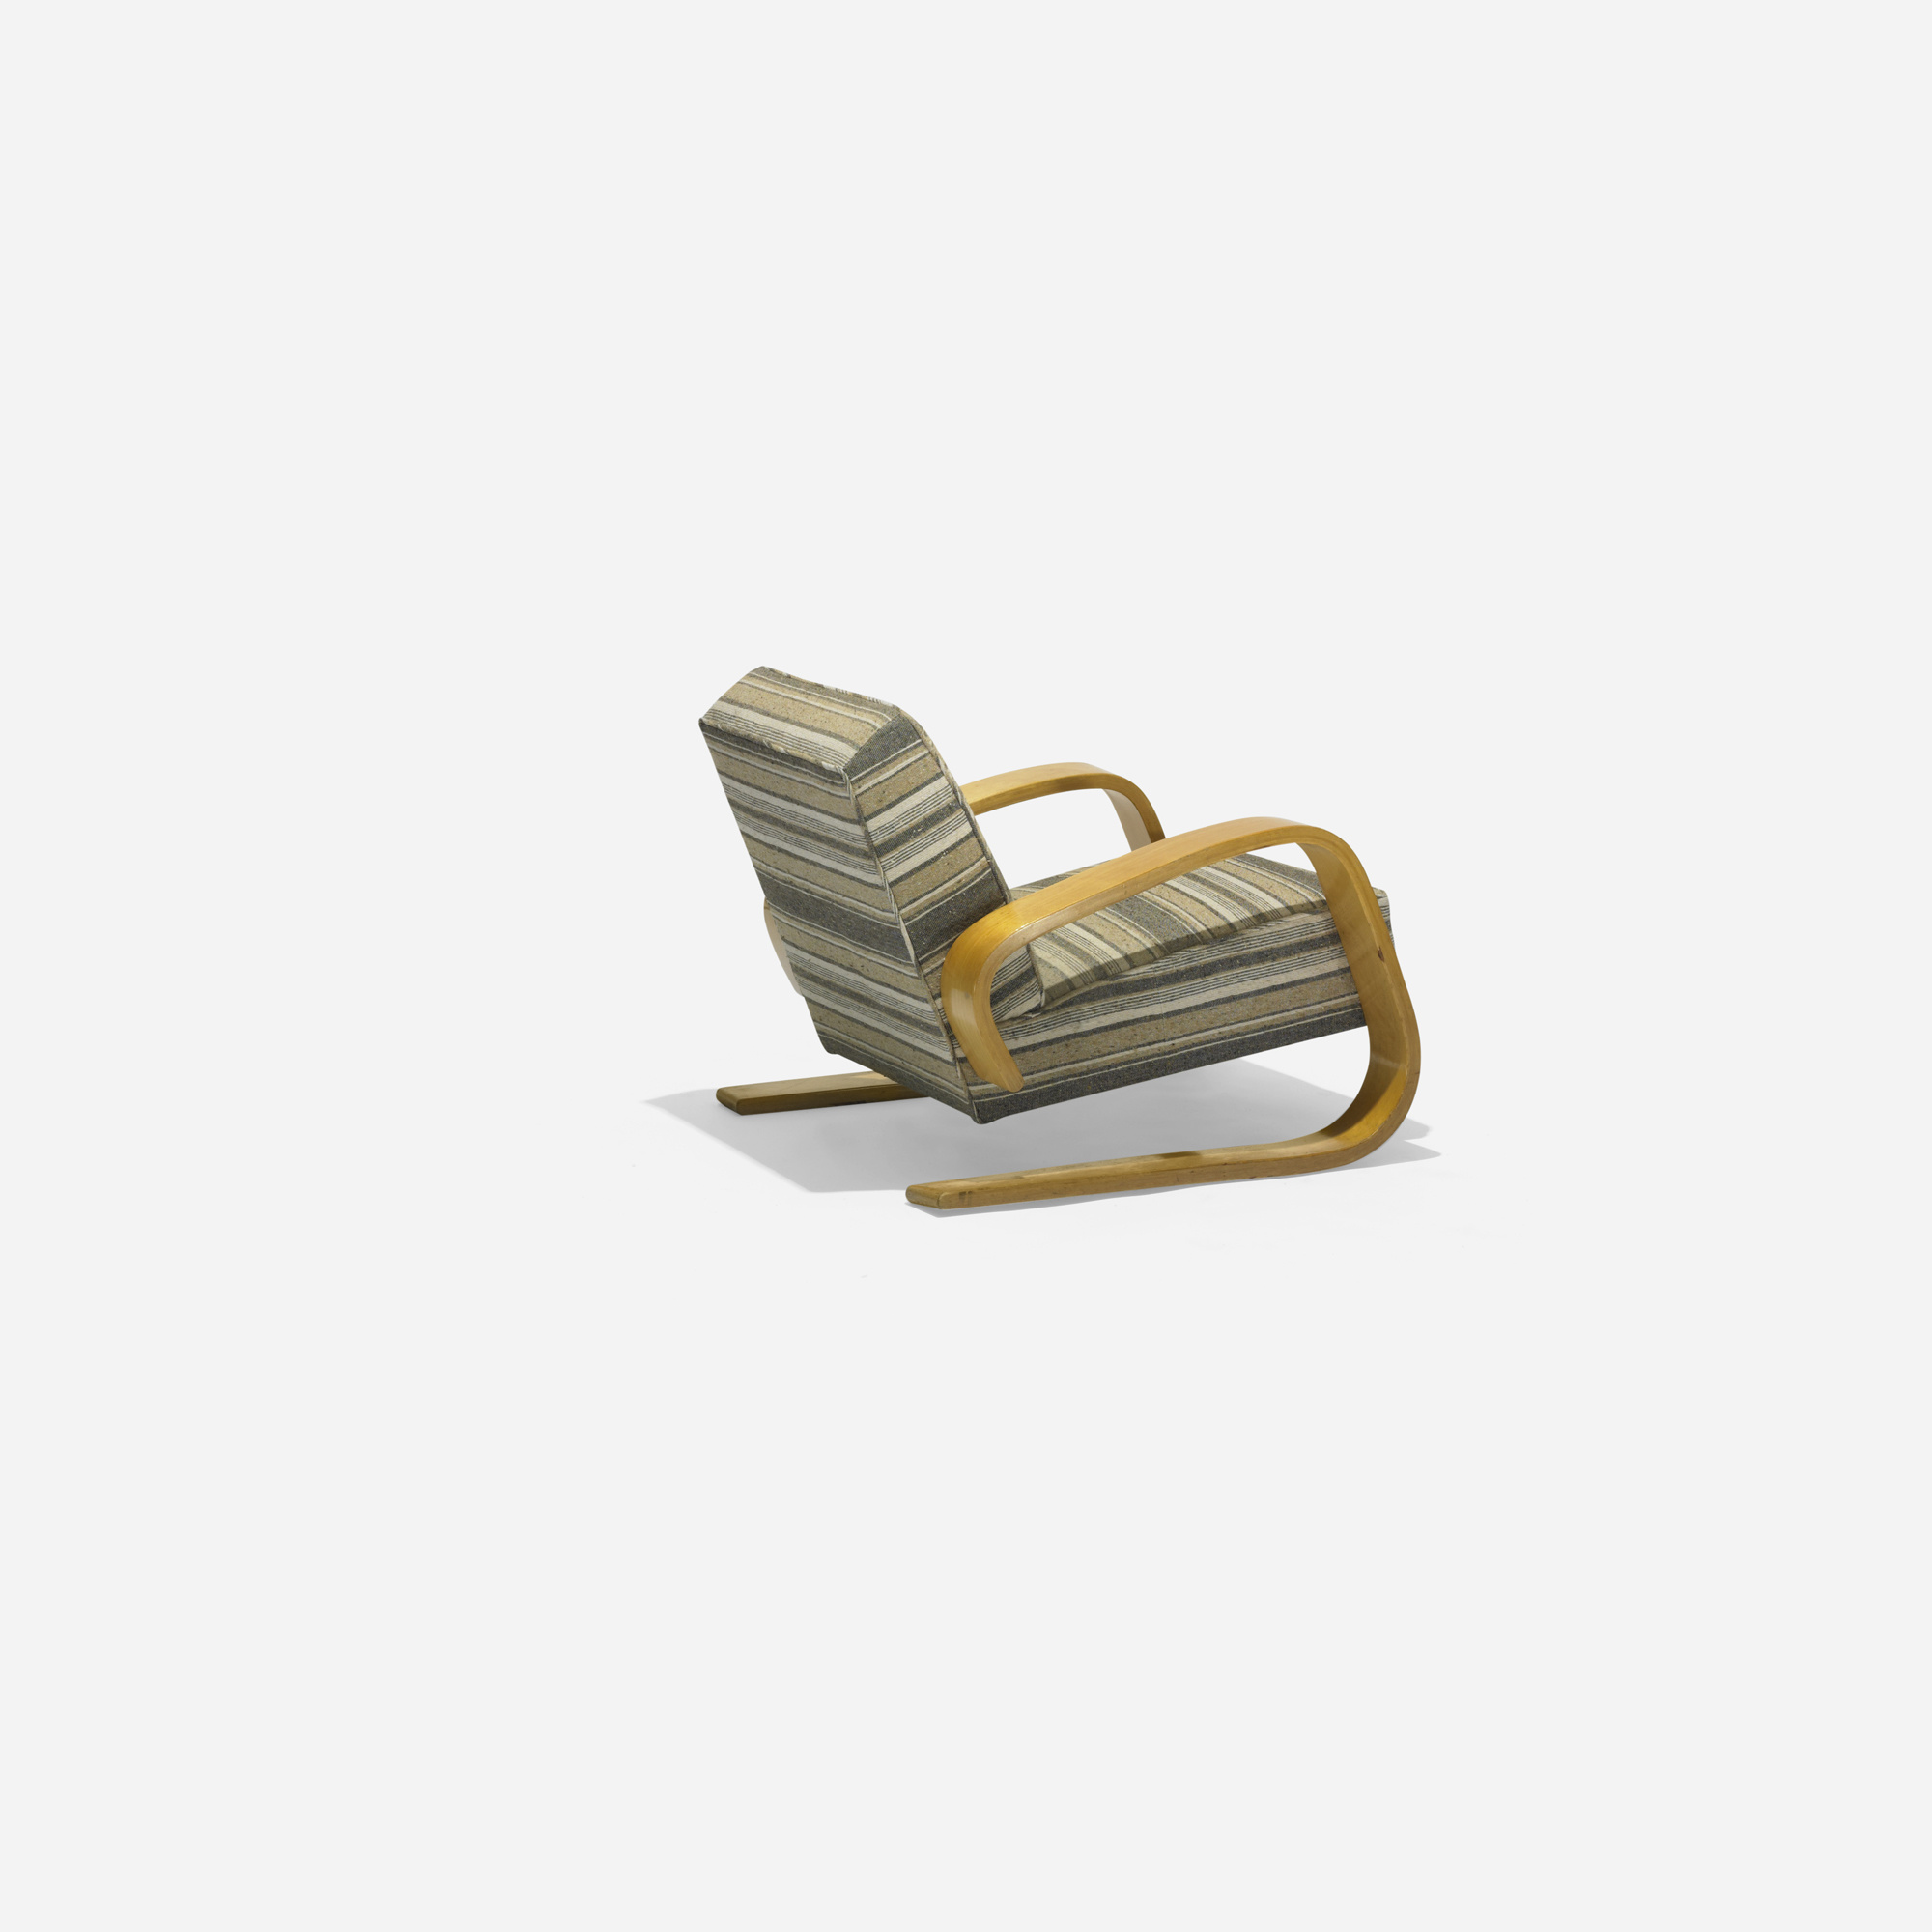 204 ALVAR AALTO Tank lounge chair model 37400 Scandinavian